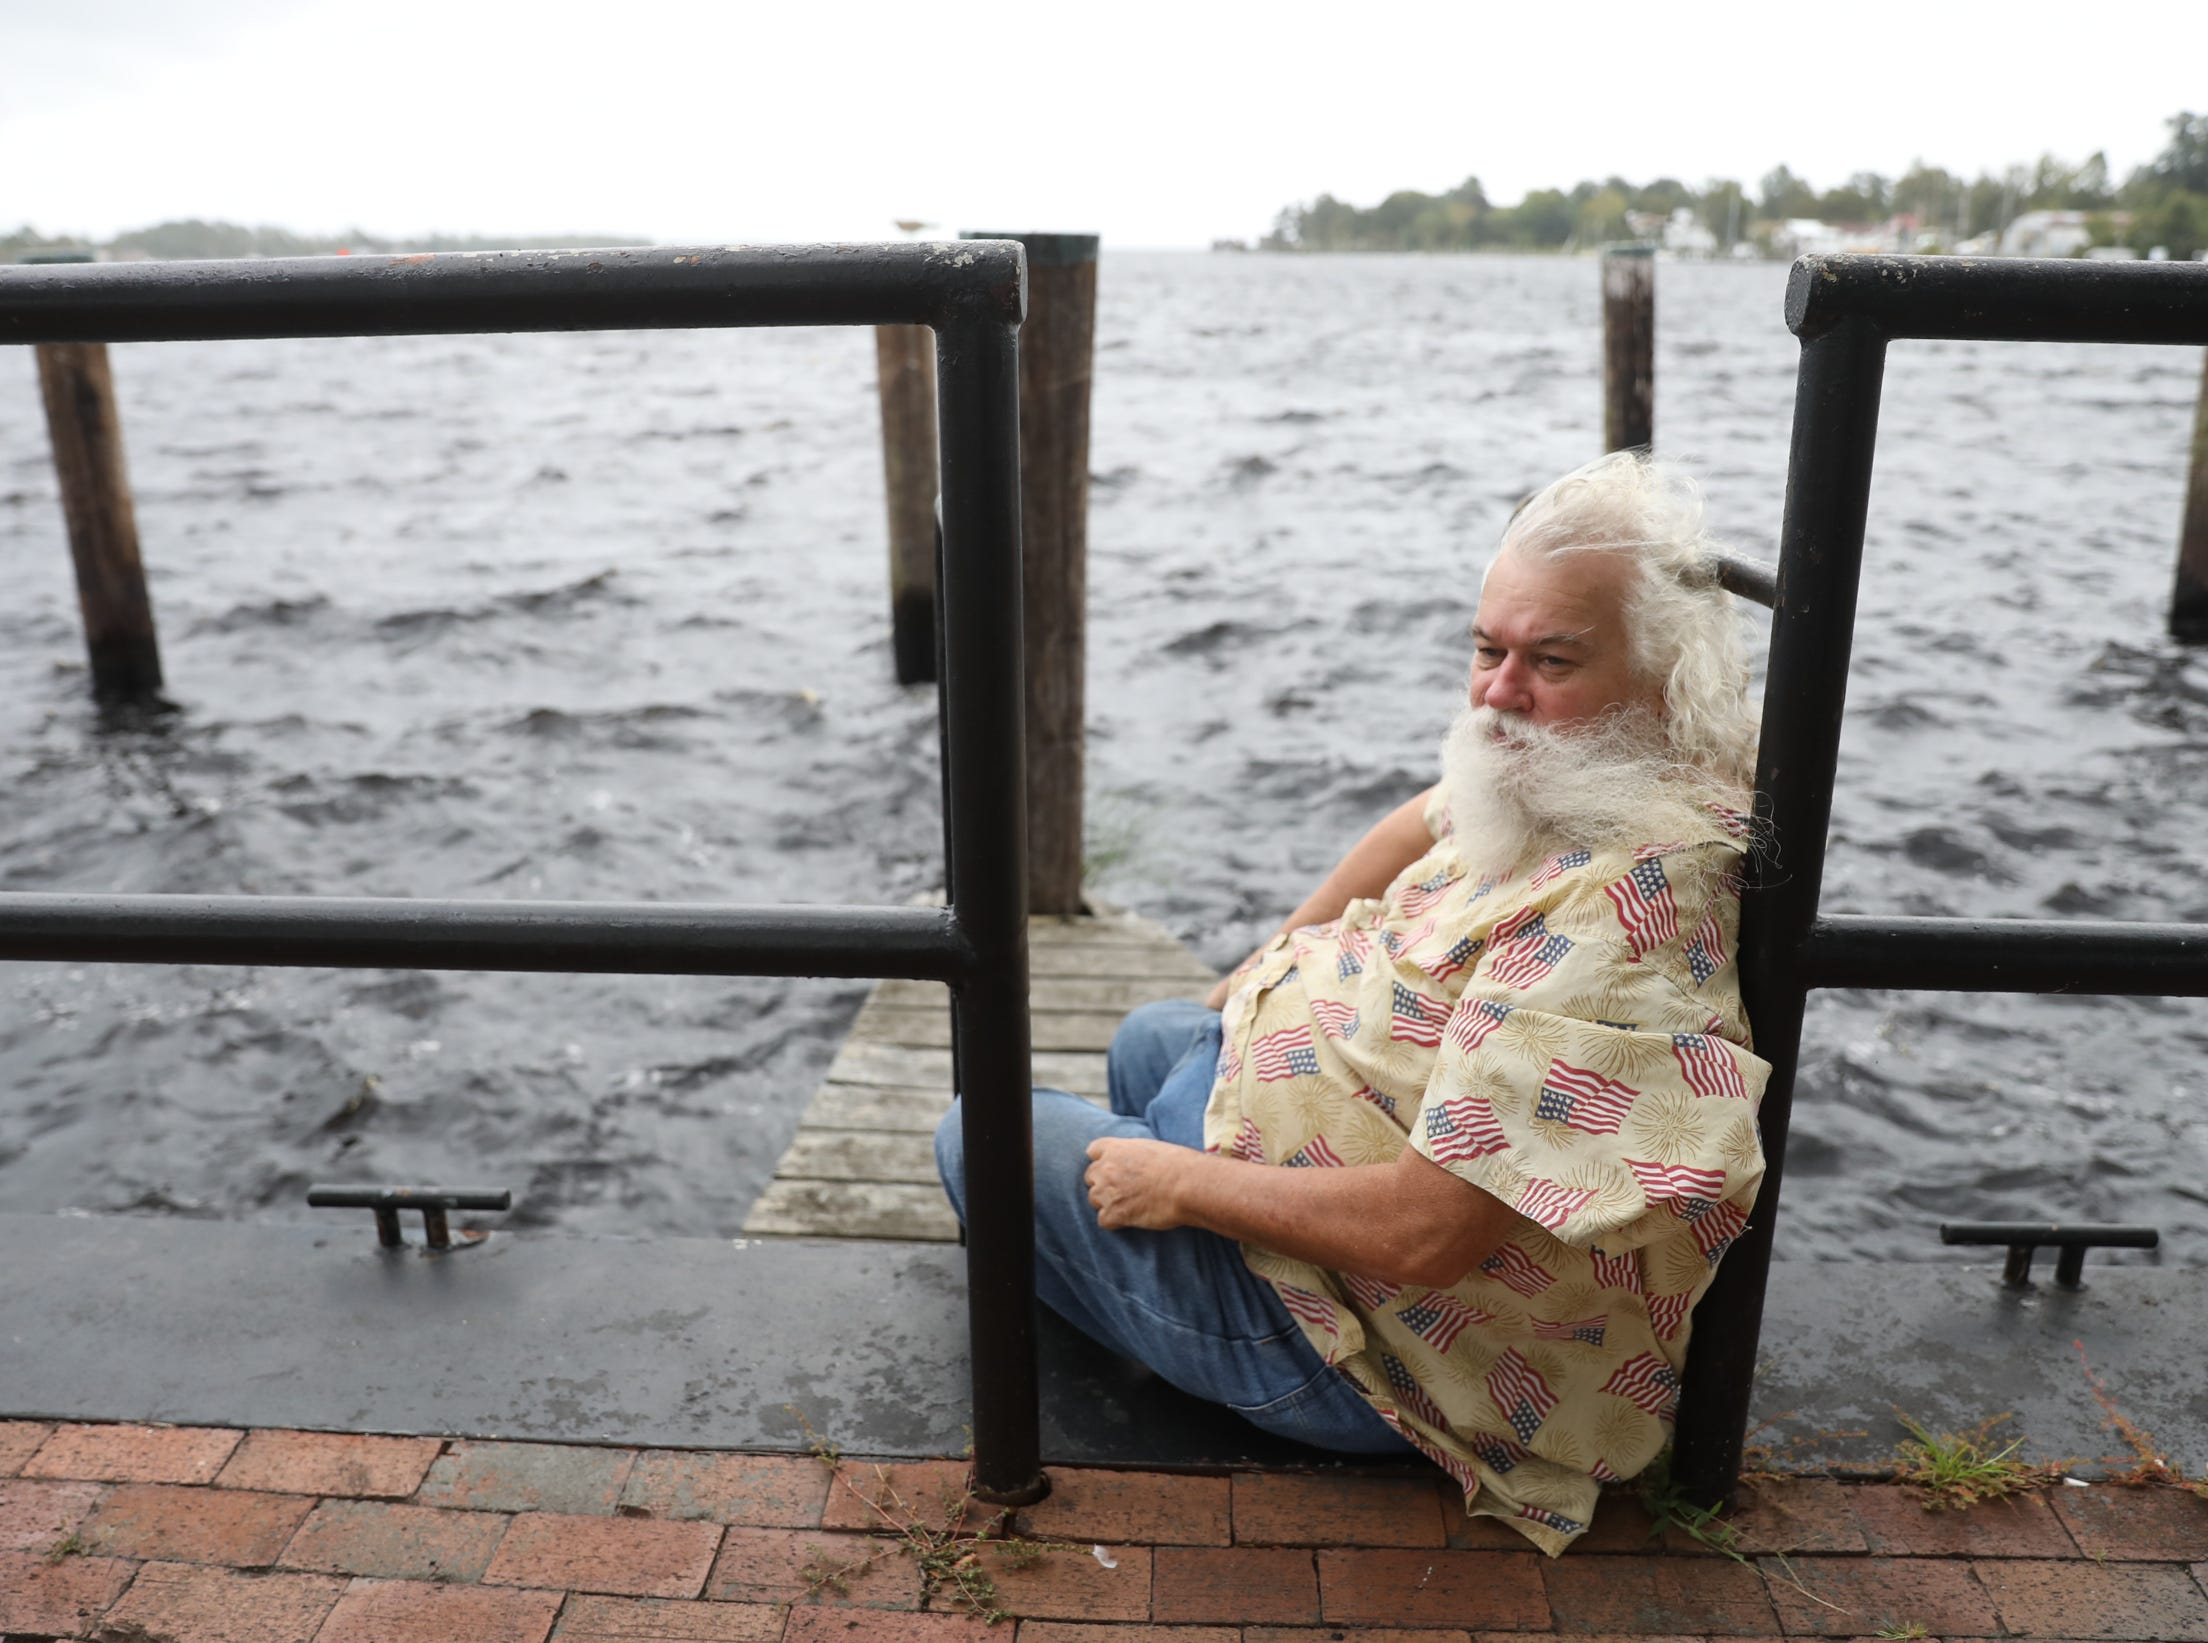 Daniel Harris sits on the bulkheasd of  Mariners' Wharf Park in downtown Elizabeth City, North Carolina on Thursday, September 13, 2018.  Harris plans to ride out the storm, like he has for all other storms, in his near-by home.